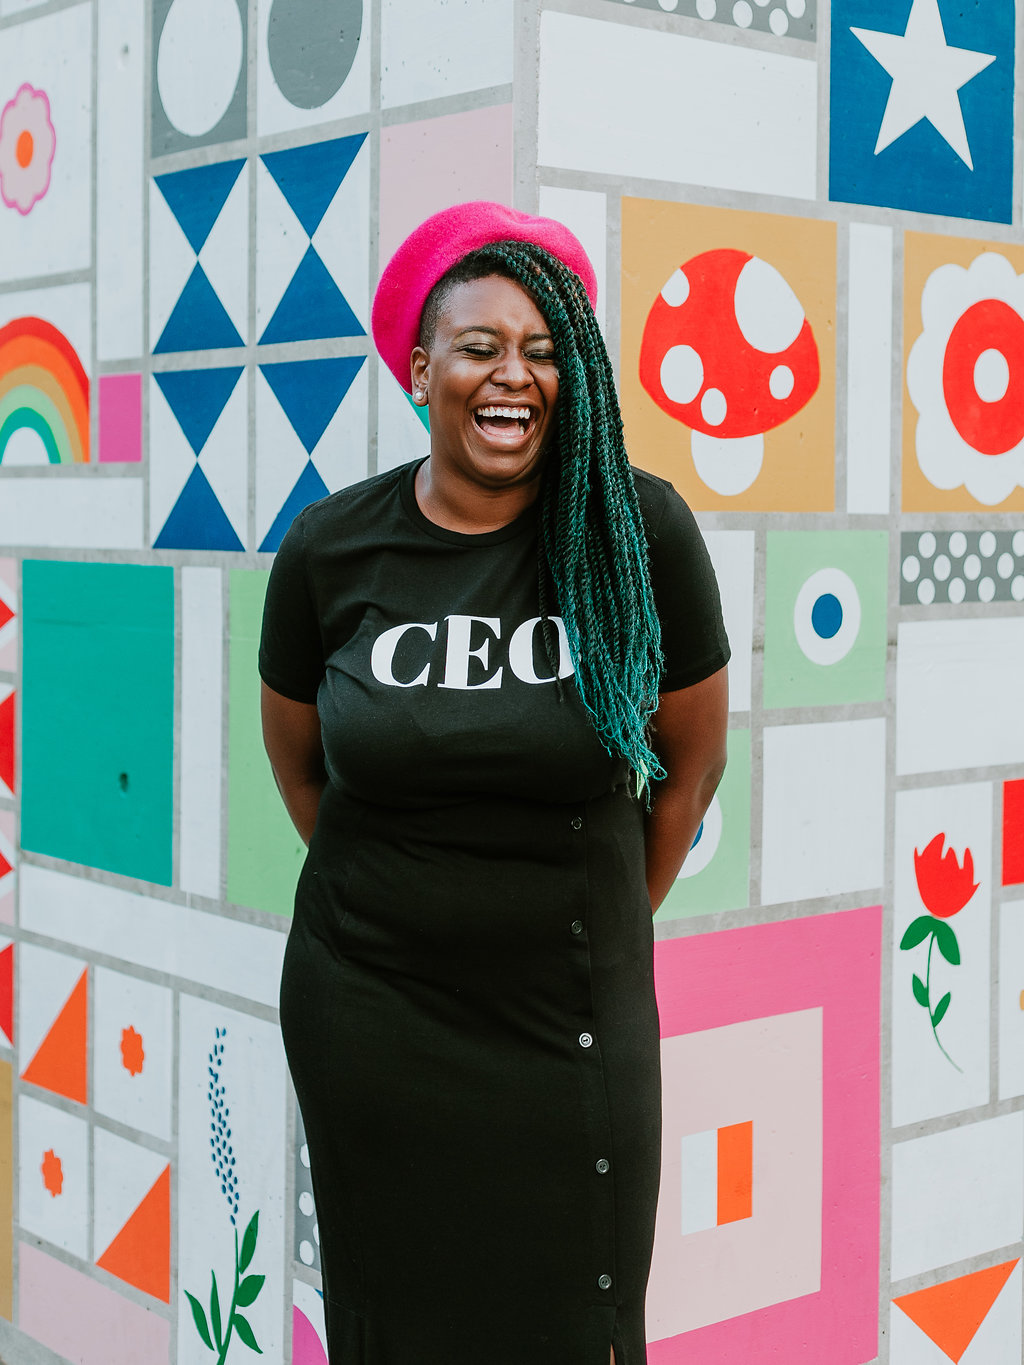 The CEO T-Shirt travel product recommended by Hannah on Pretty Progressive.